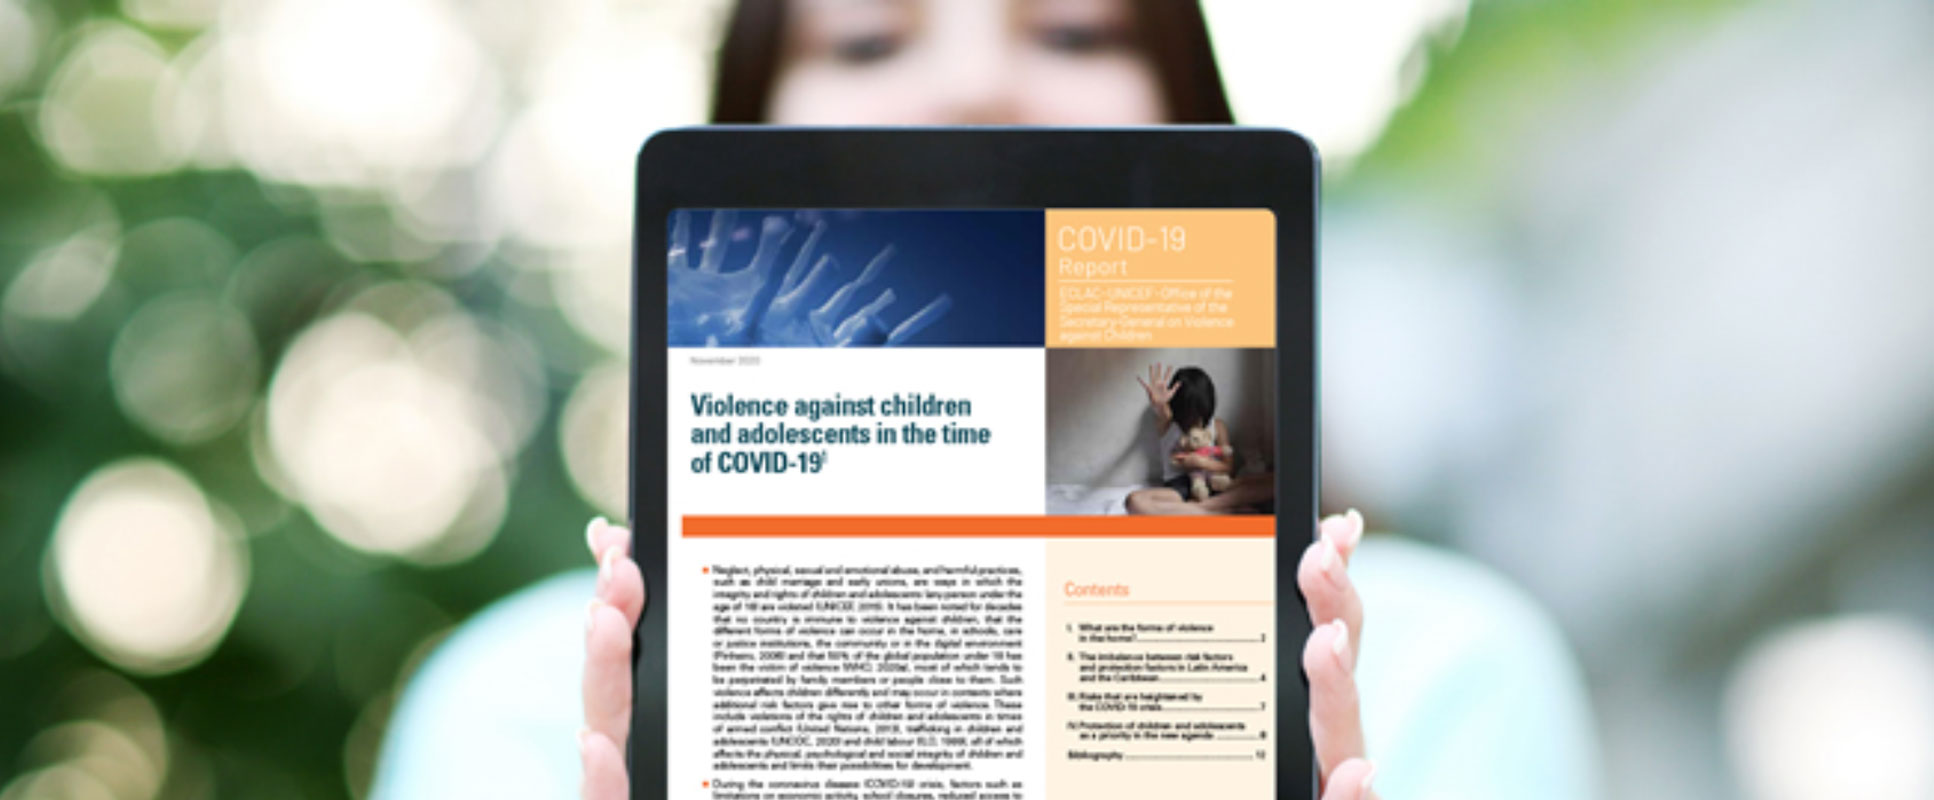 United Nations Warns about the Increased Risk of Violence in the Home against Children and Adolescents Amid COVID-19 and Issues Recommendations to Address It